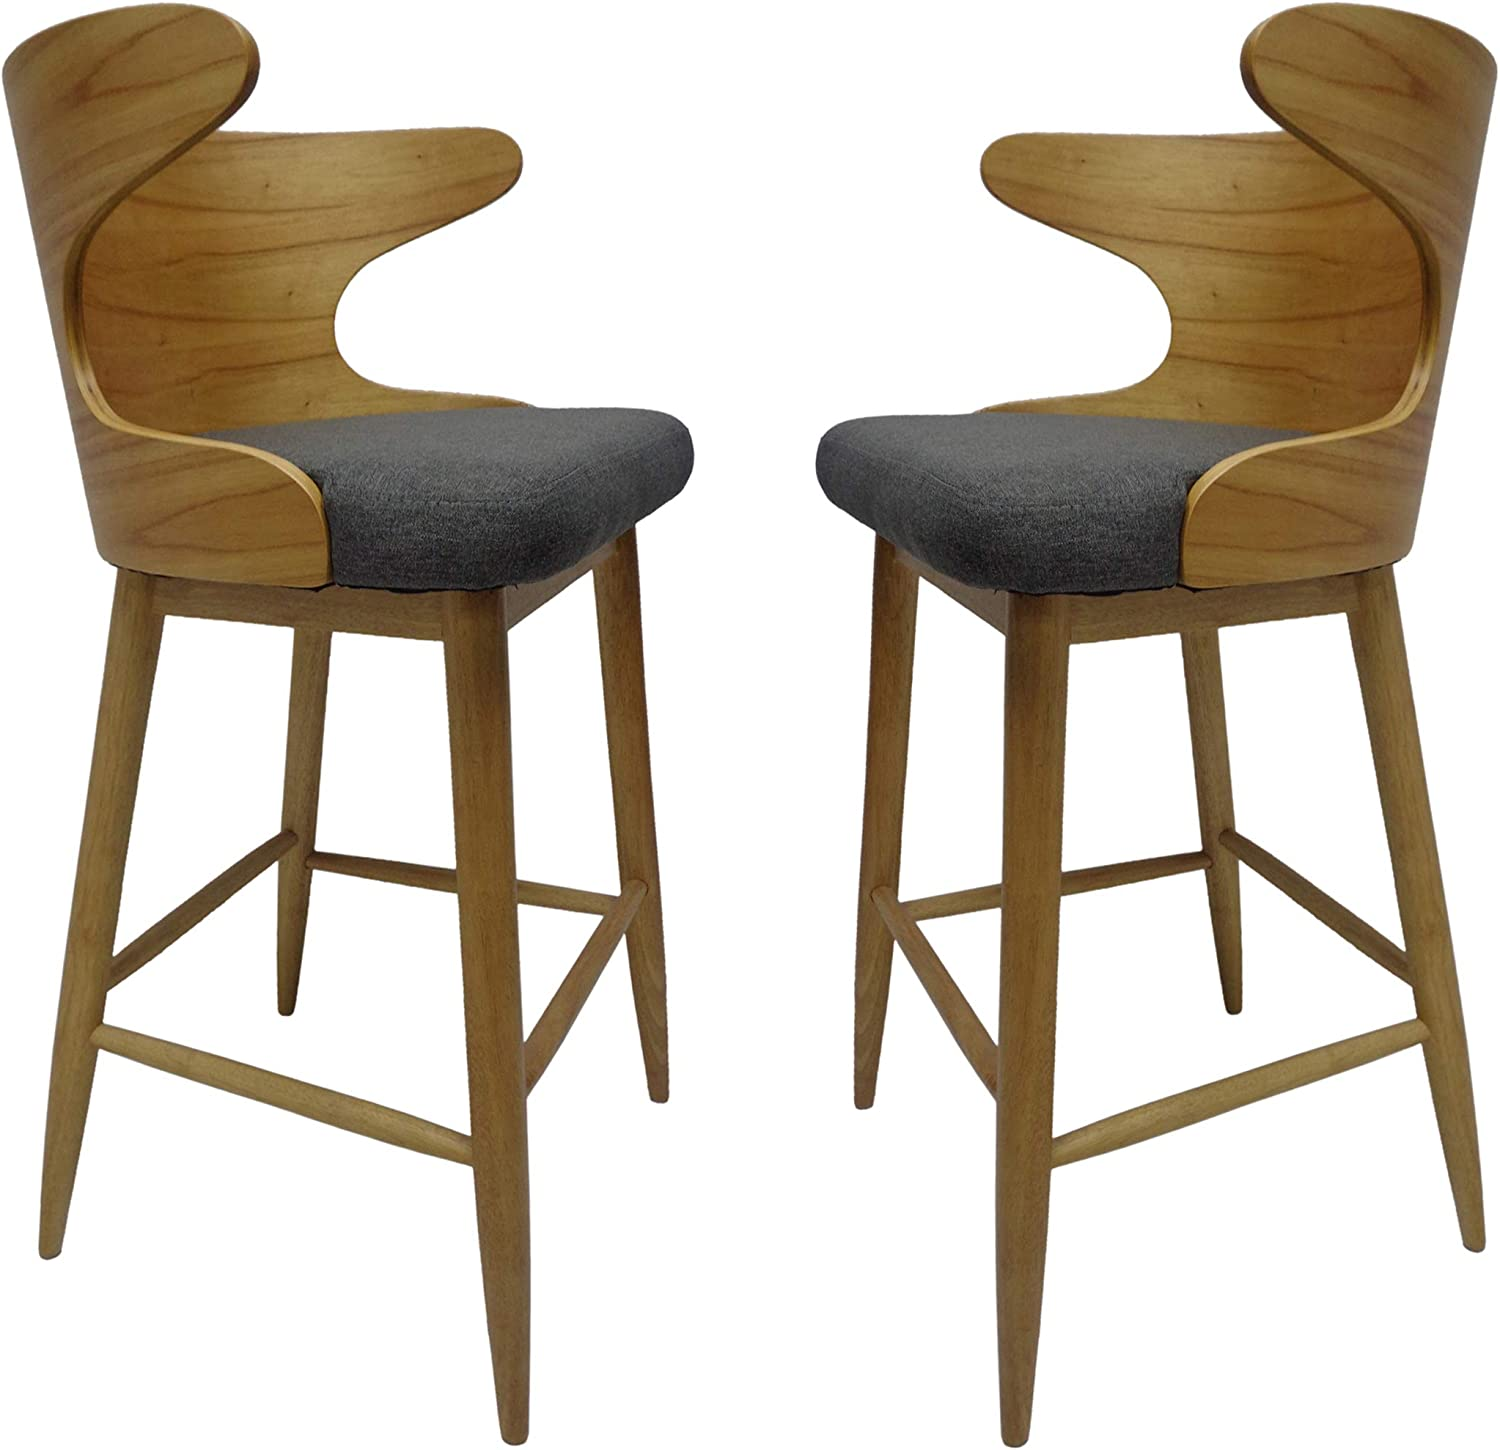 3. Cushioned Bar Stools with Arms Truda mid Century